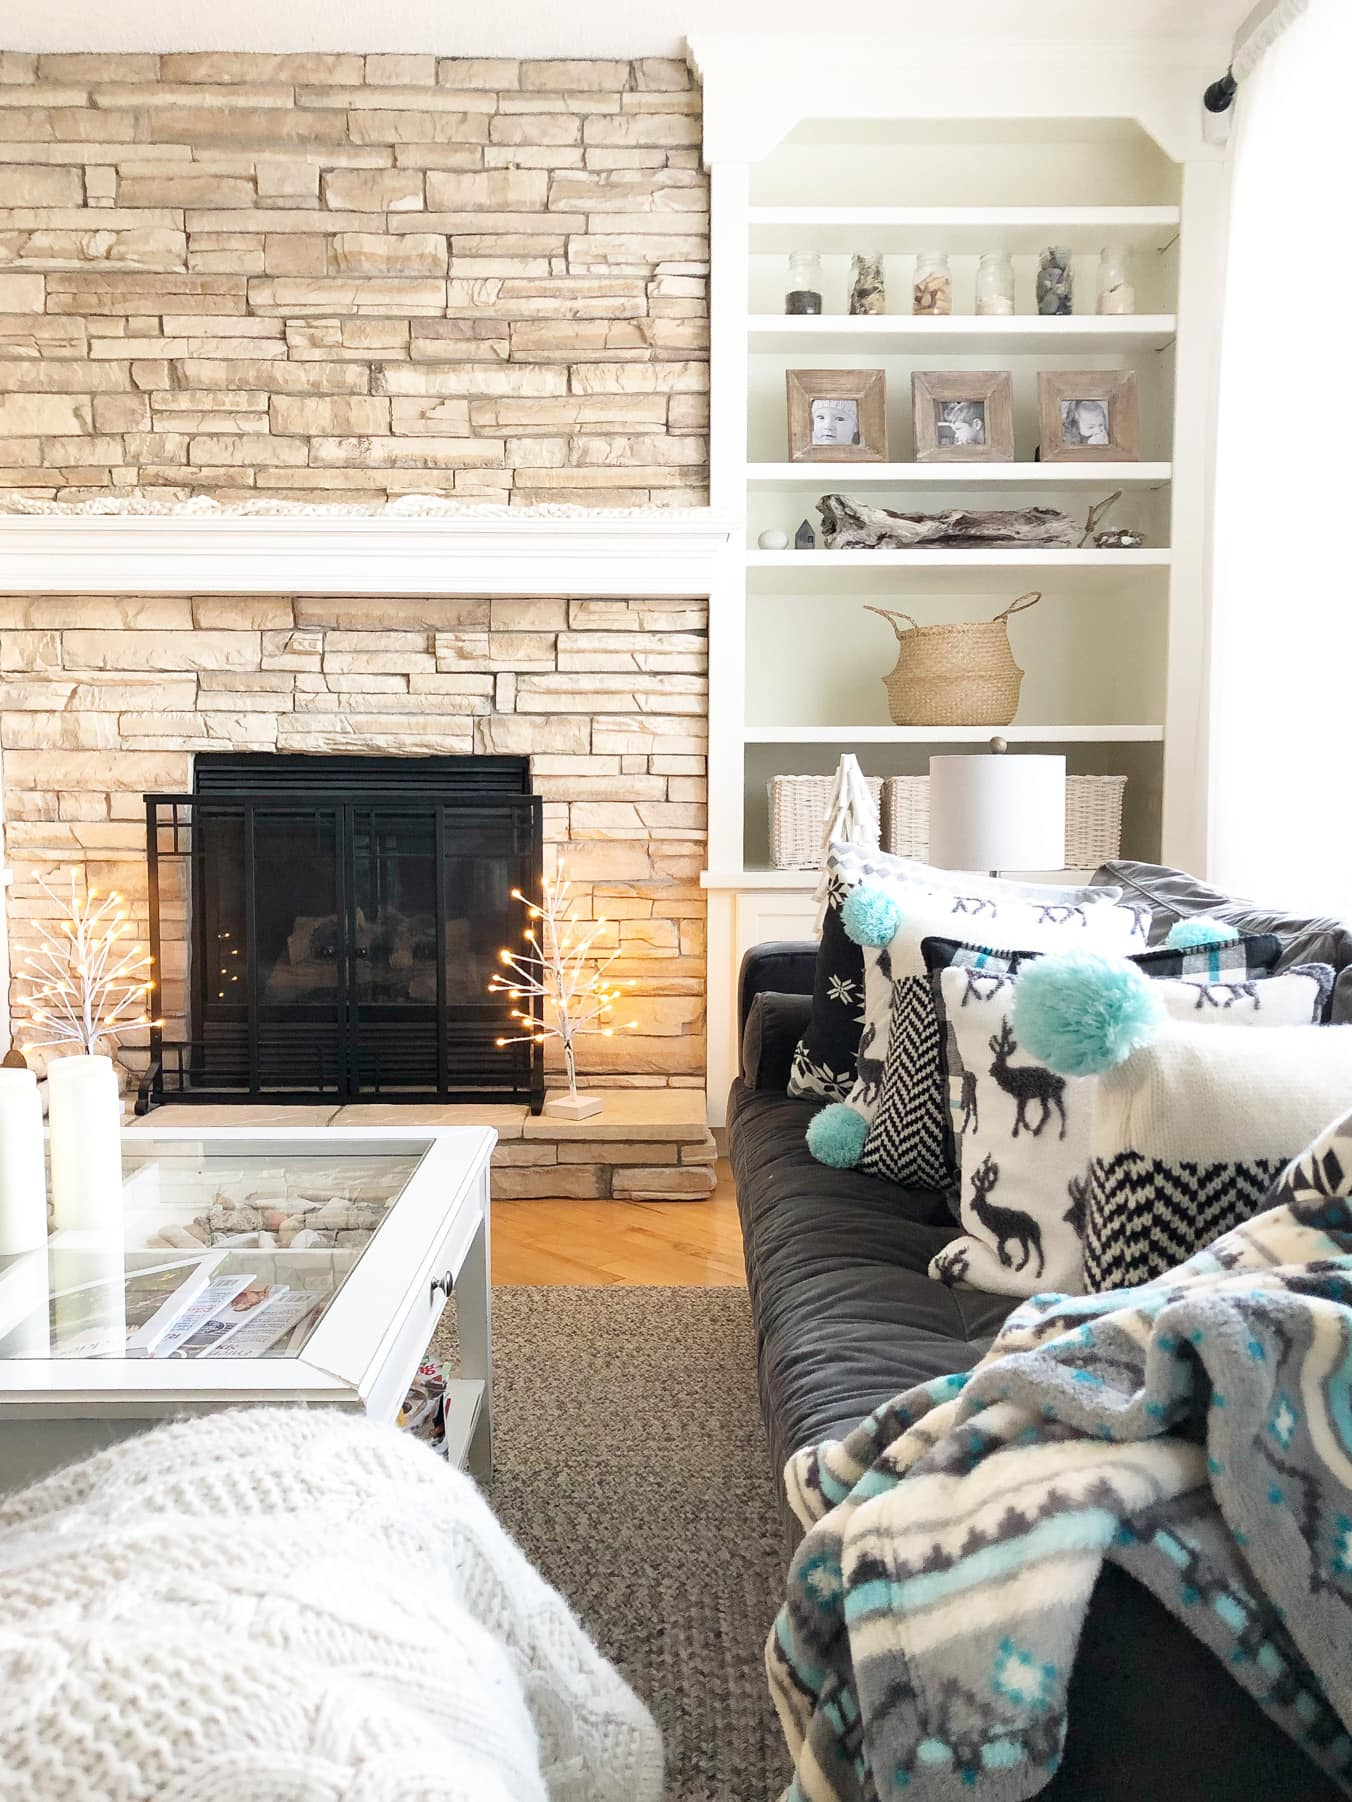 5 Winter Decorating Ideas and Tips